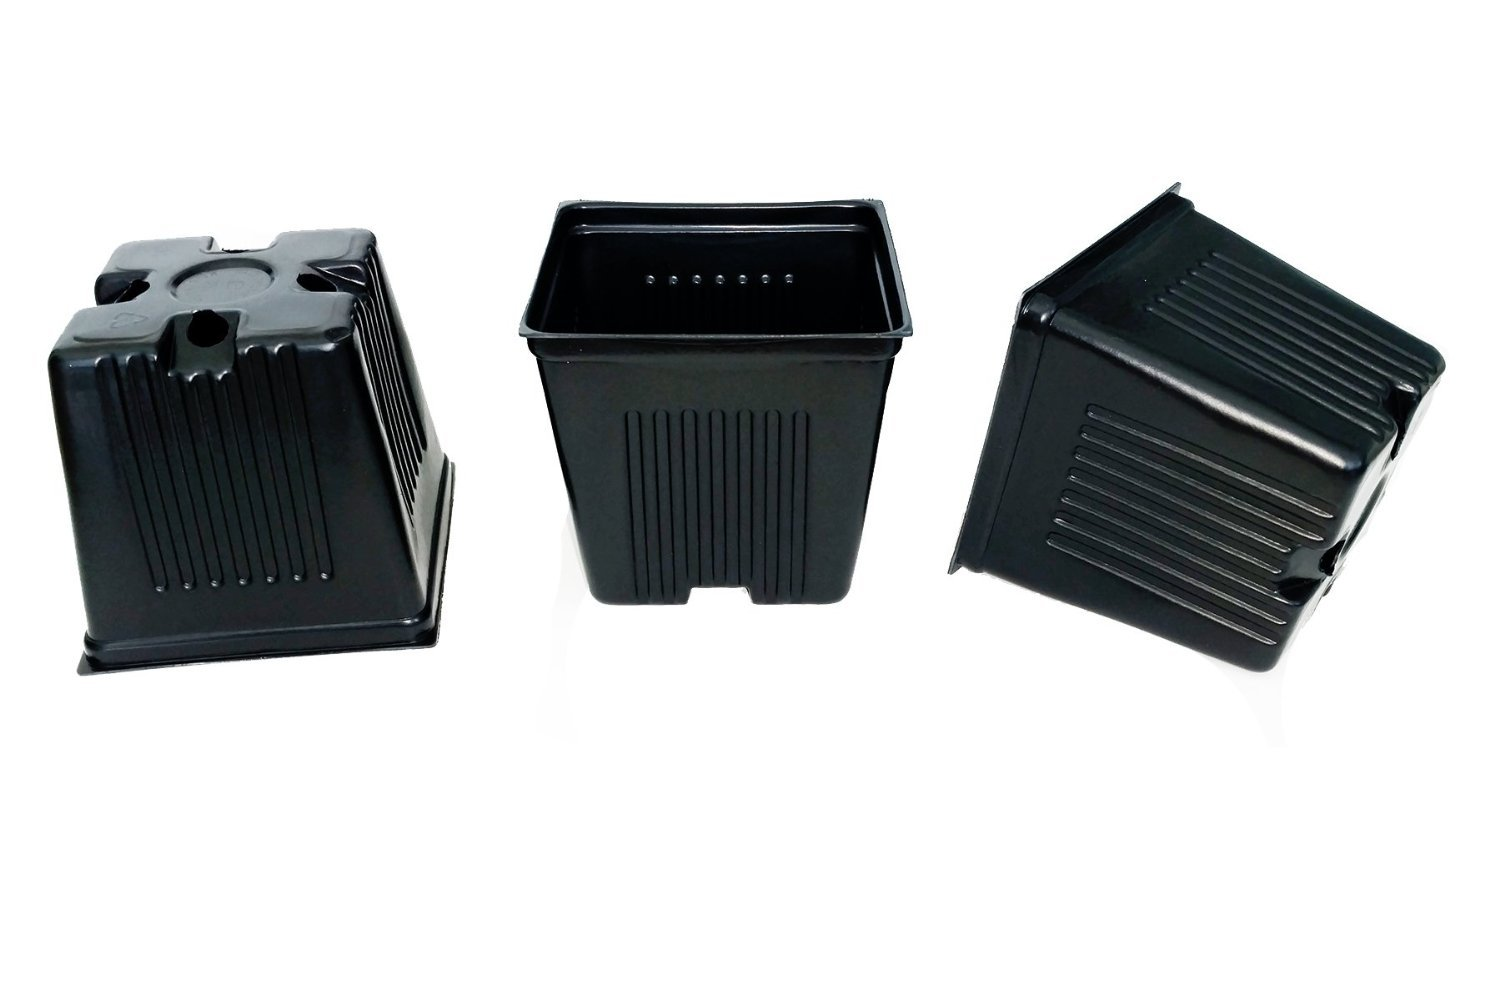 50 Dura pots 3 1/2'' Square Durable and reusable yet Lightweight & flexible for easy de-potting